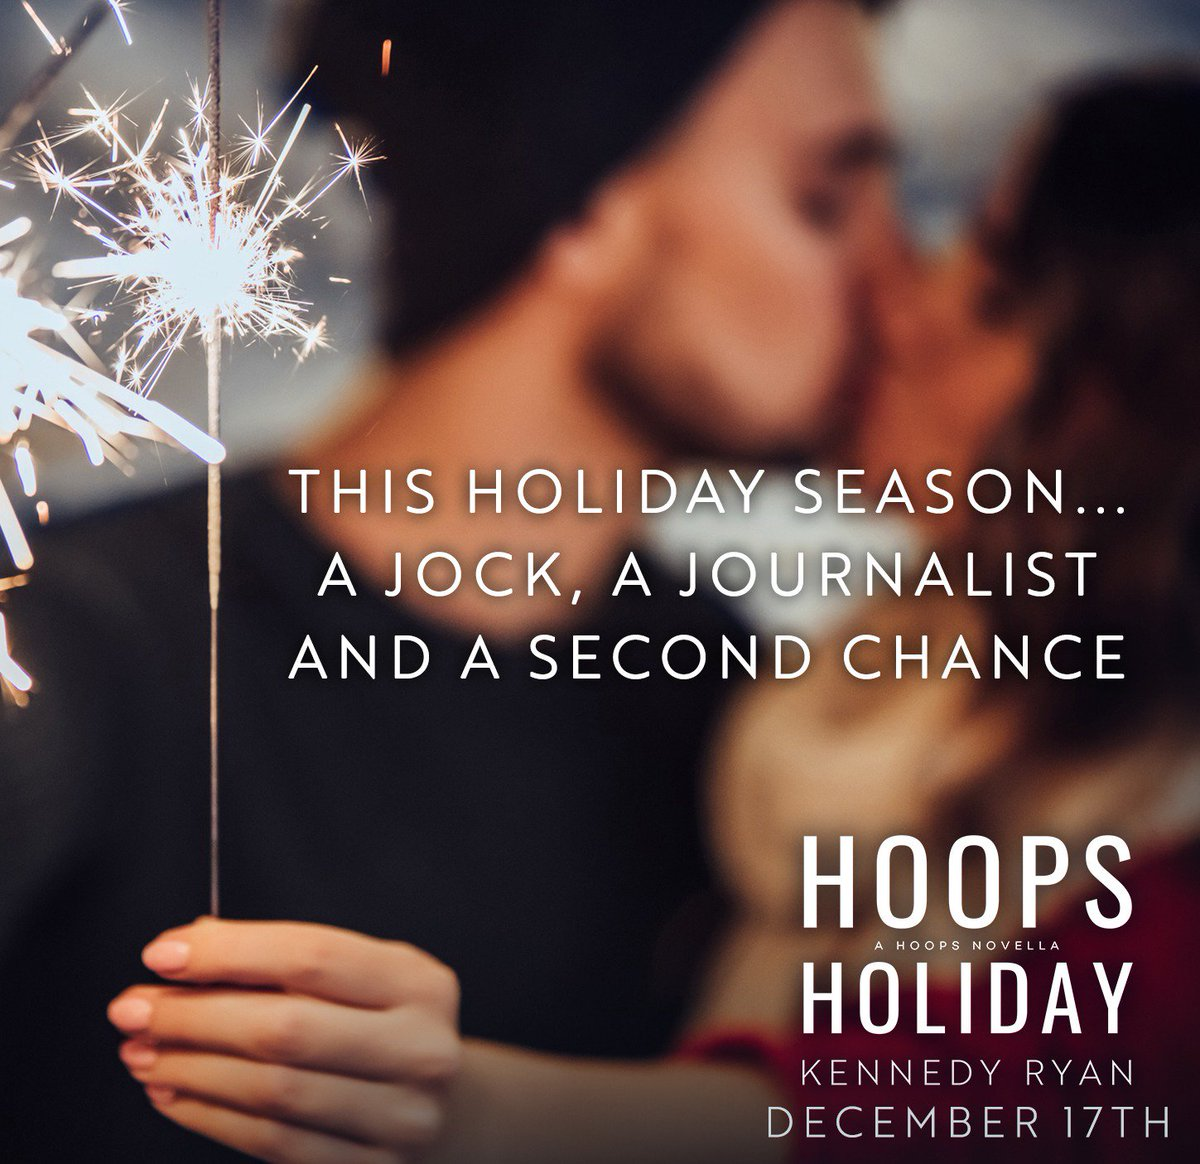 Image result for hoops holiday kennedy ryan